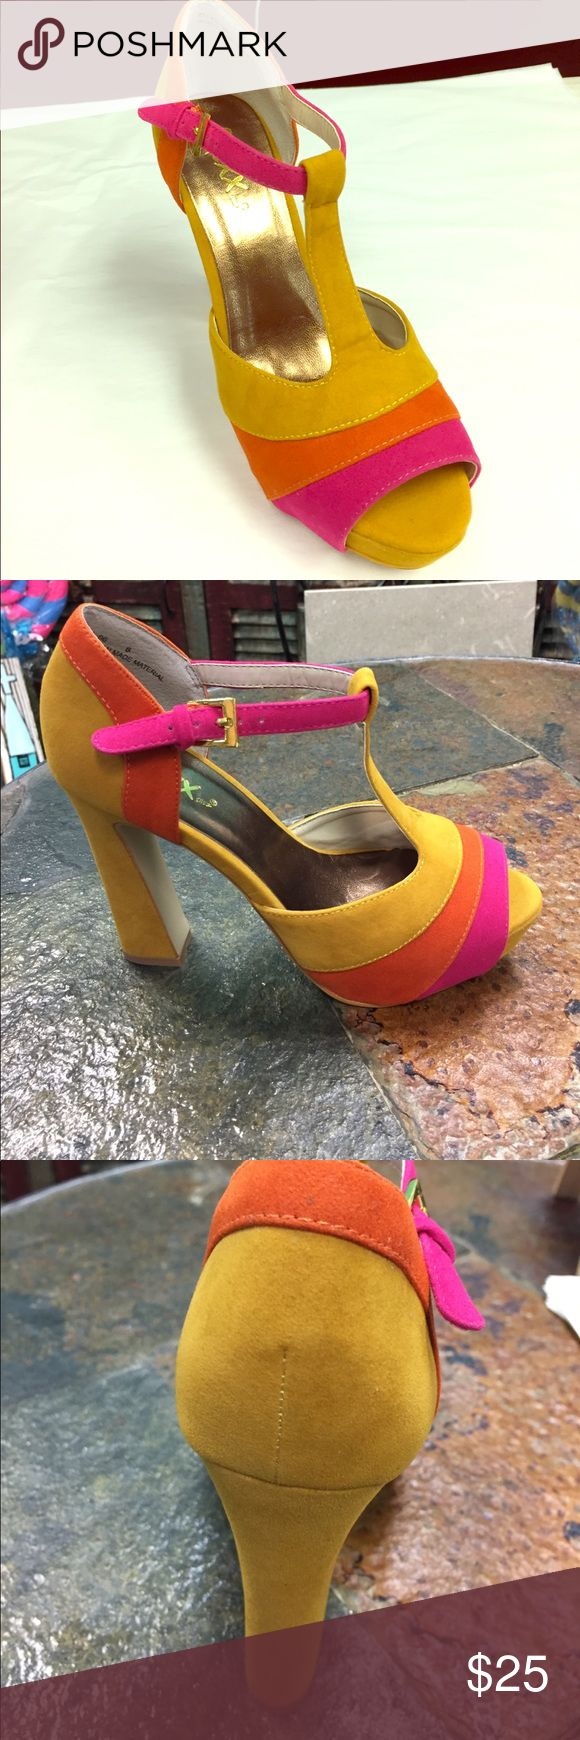 Pink Mustard Orange High Heel Retro Shoes T strap Pink Mustard Orange High Heel Retro Shoes Classic Star Power Here Disco Anyone? Funky Diva Shoe true to size suede material Mixx Shoes Heels